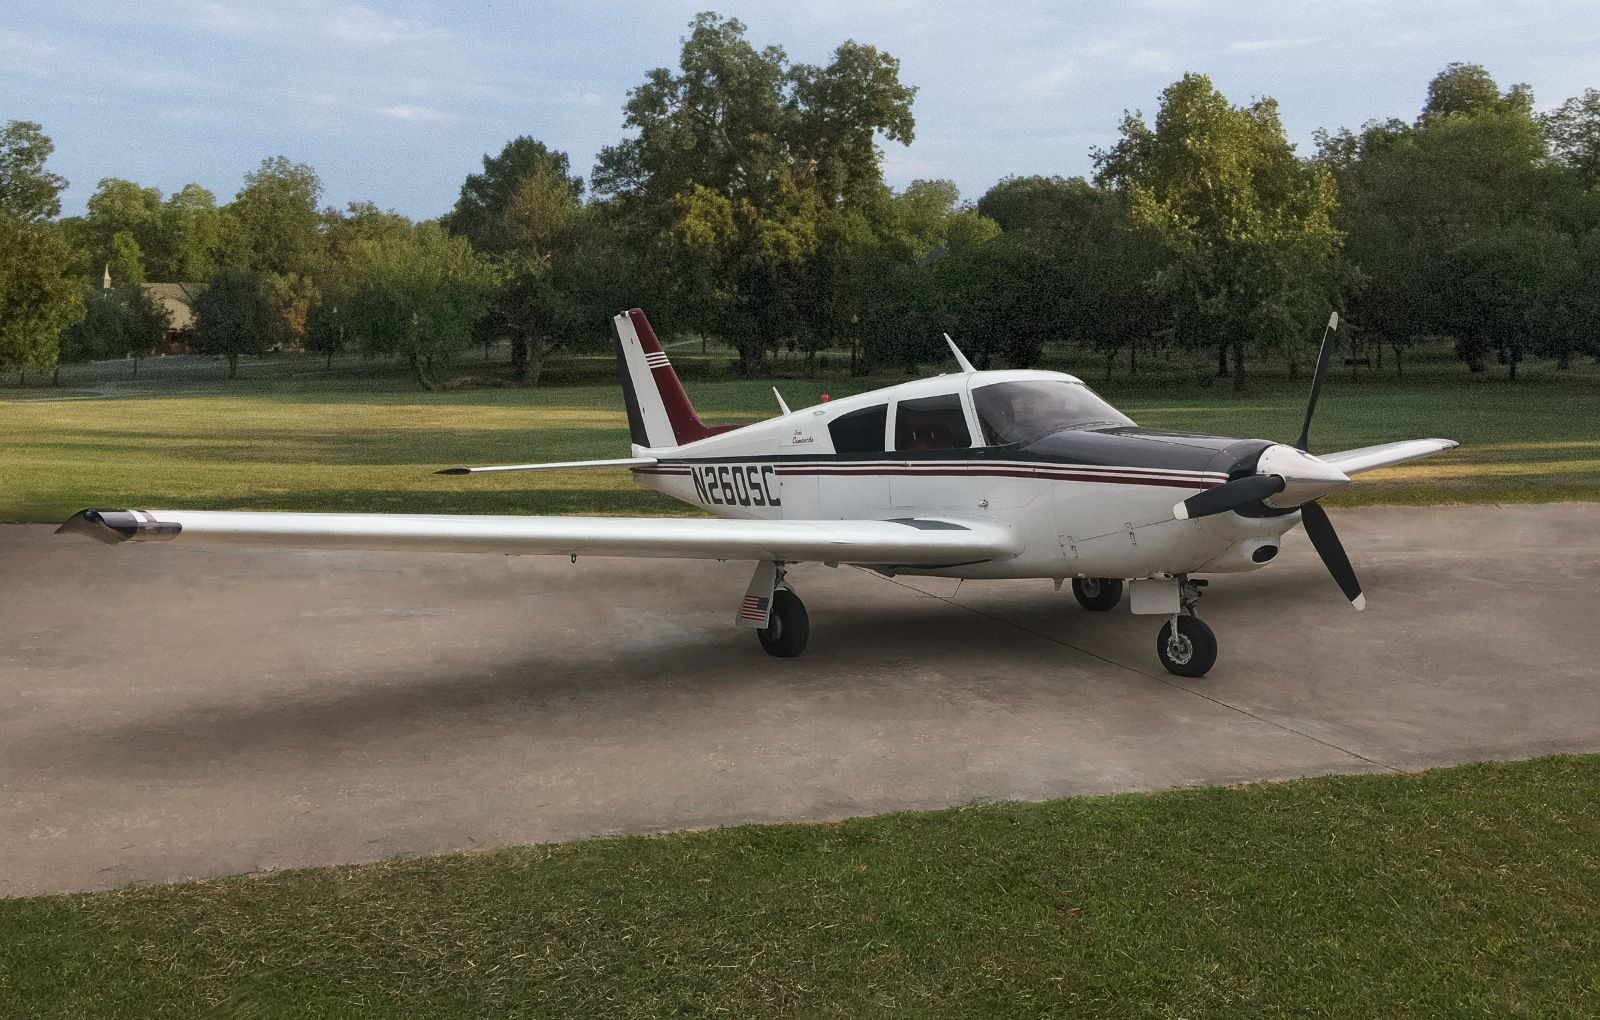 Fuel injected 1964 Piper PA-24-250 Comanche for sale